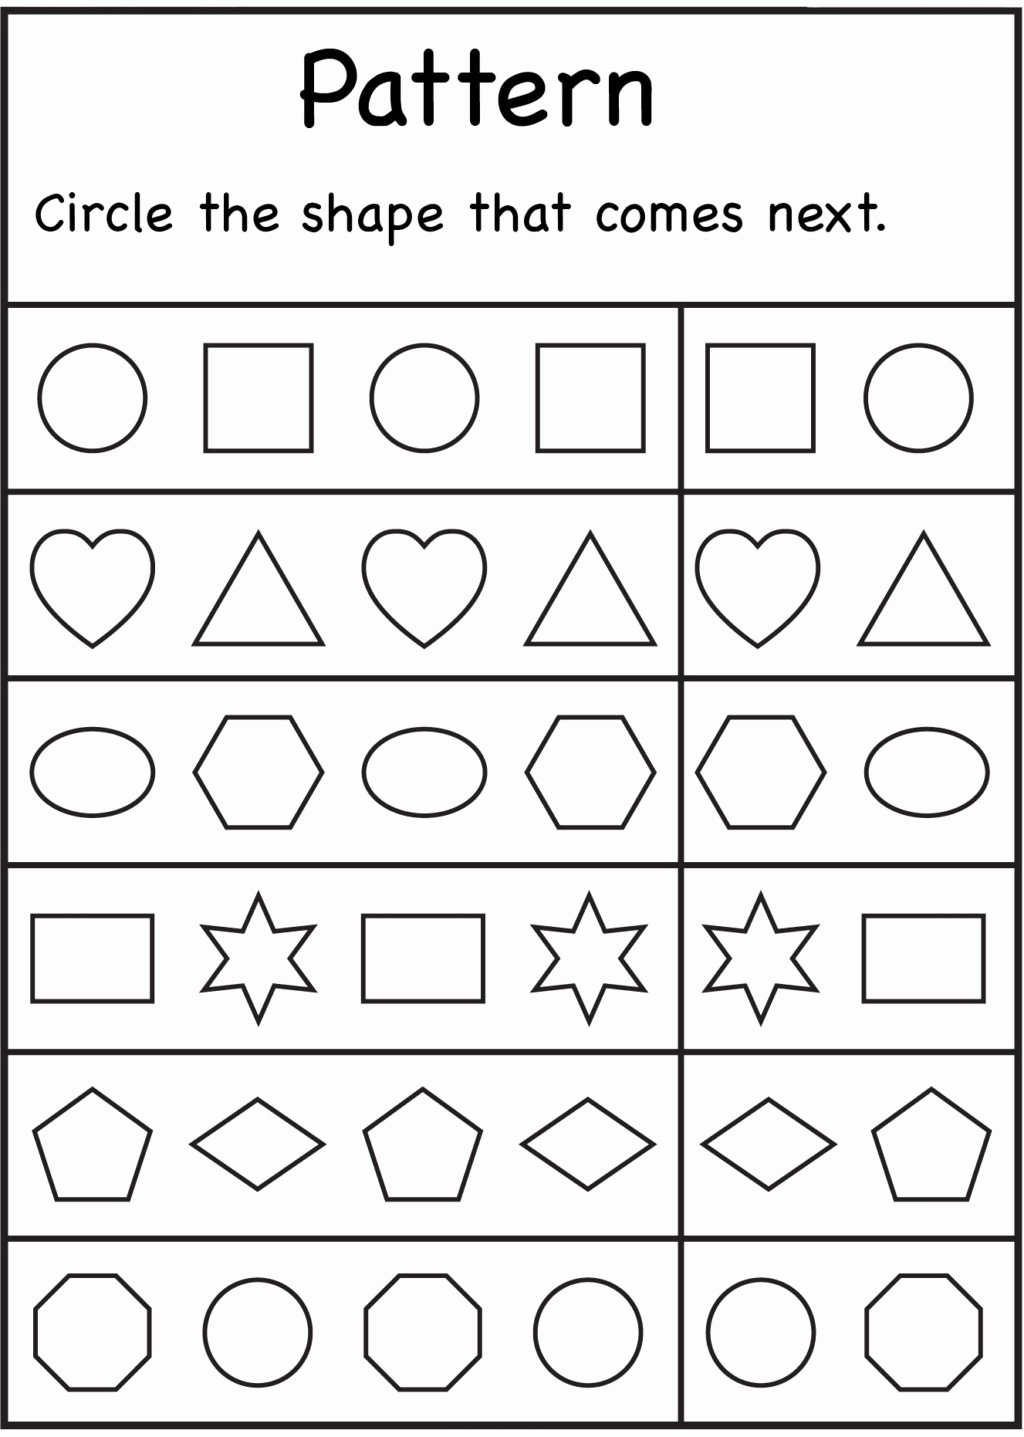 Worksheets for Preschoolers Math Unique Worksheet Kindergarten Worksheets Math Preschool